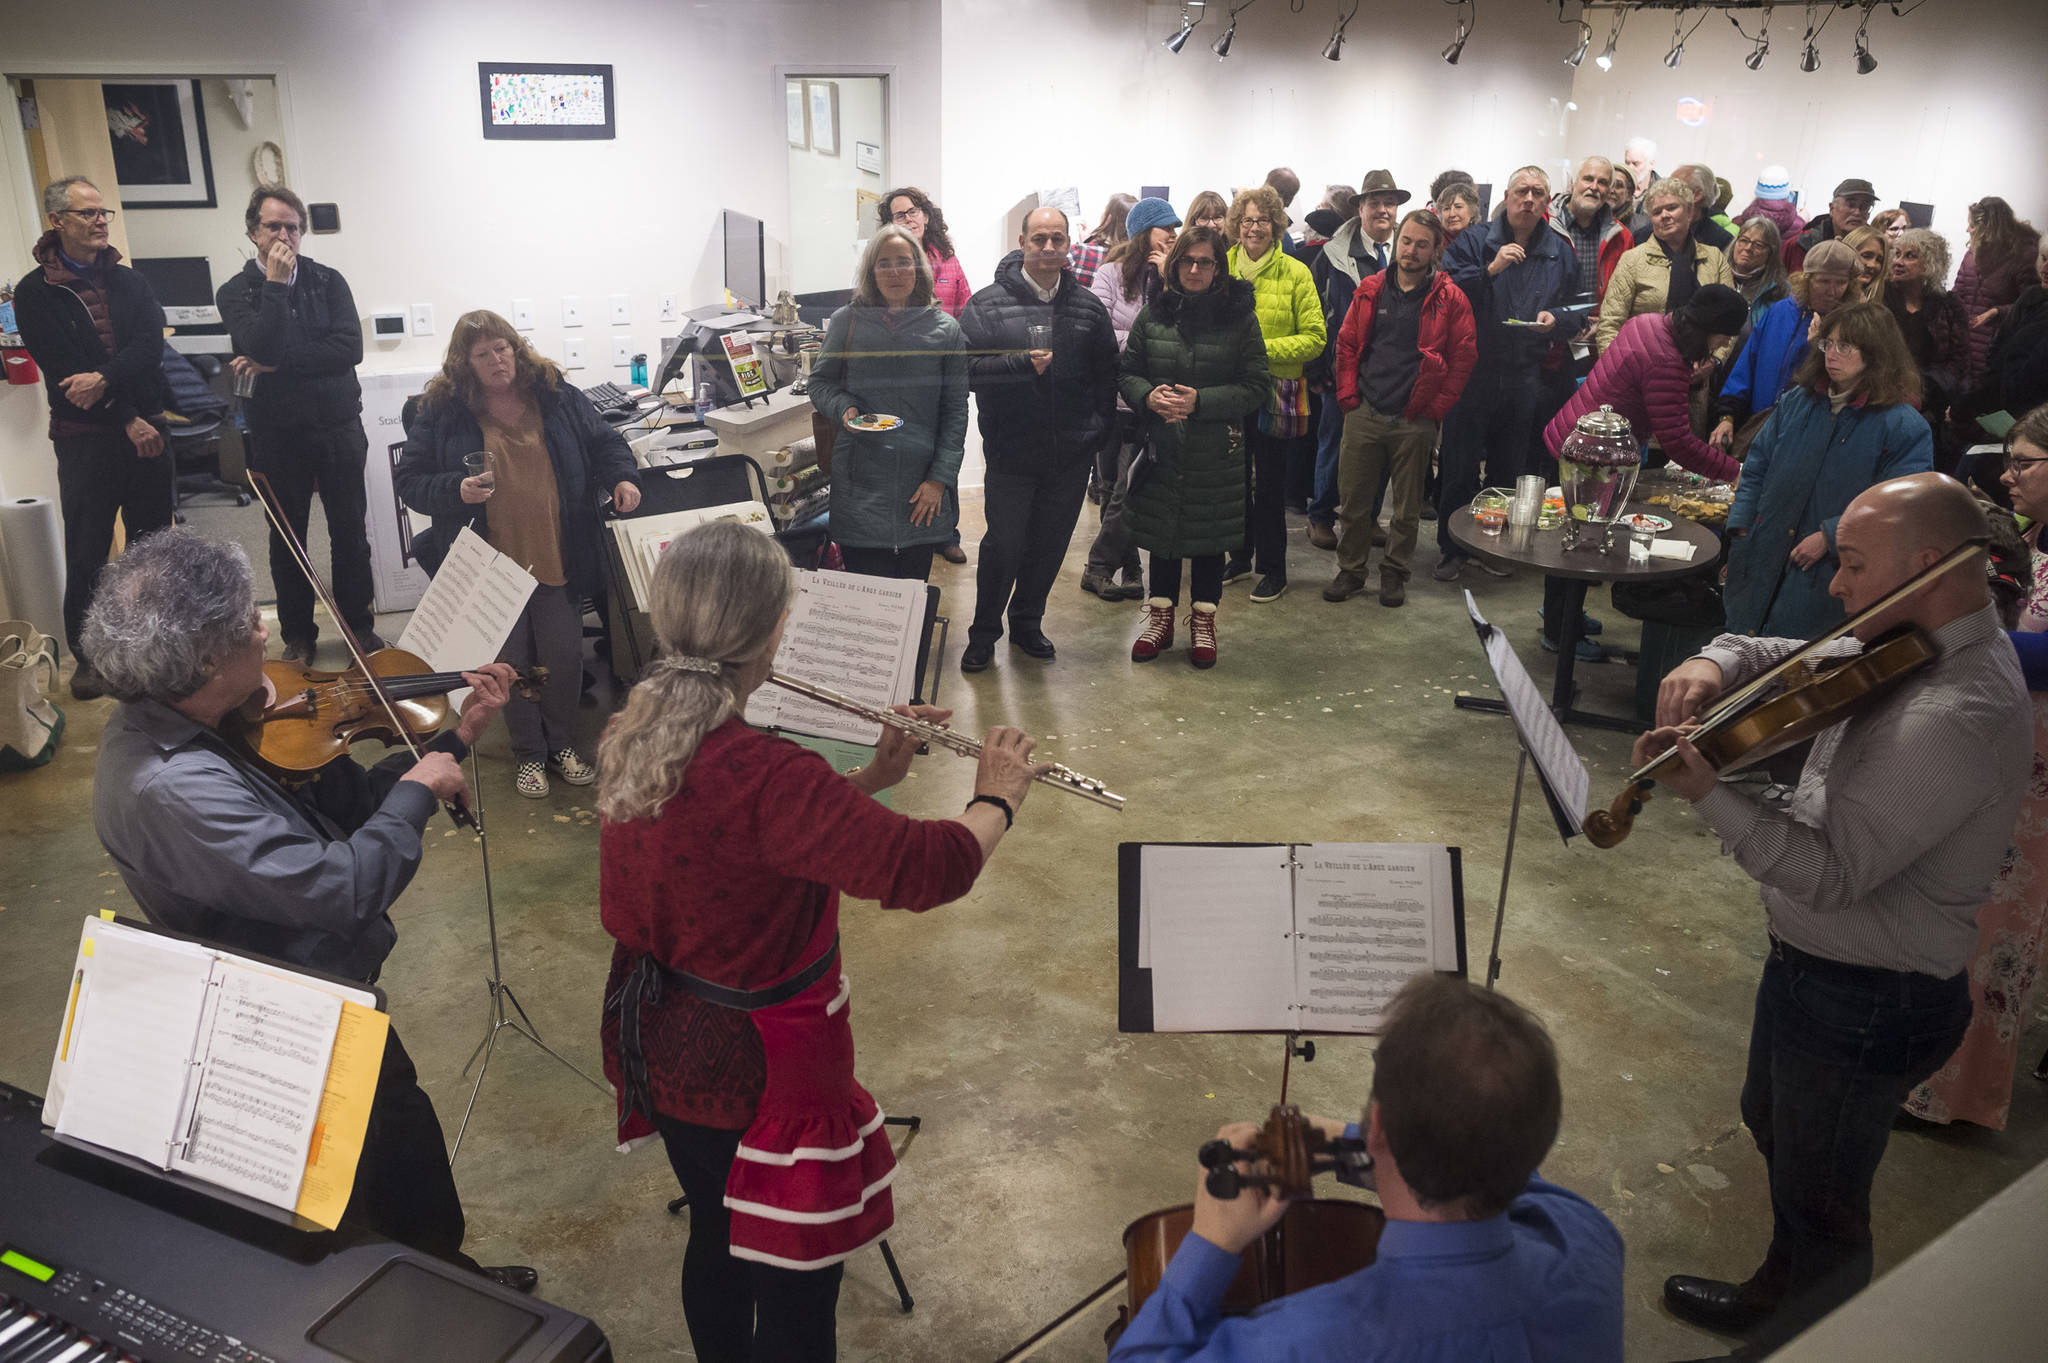 """SaraNaTa"", made up of Sara Radke Brown, Steve Tada, Nancy Nash, Andrew Schirmer, Jetta Whittaker, David Seid and John Staub perform Baroque tunes and carols at The Canvas during Gallery Walk on Friday, Dec. 7, 2018. (Michael Penn 